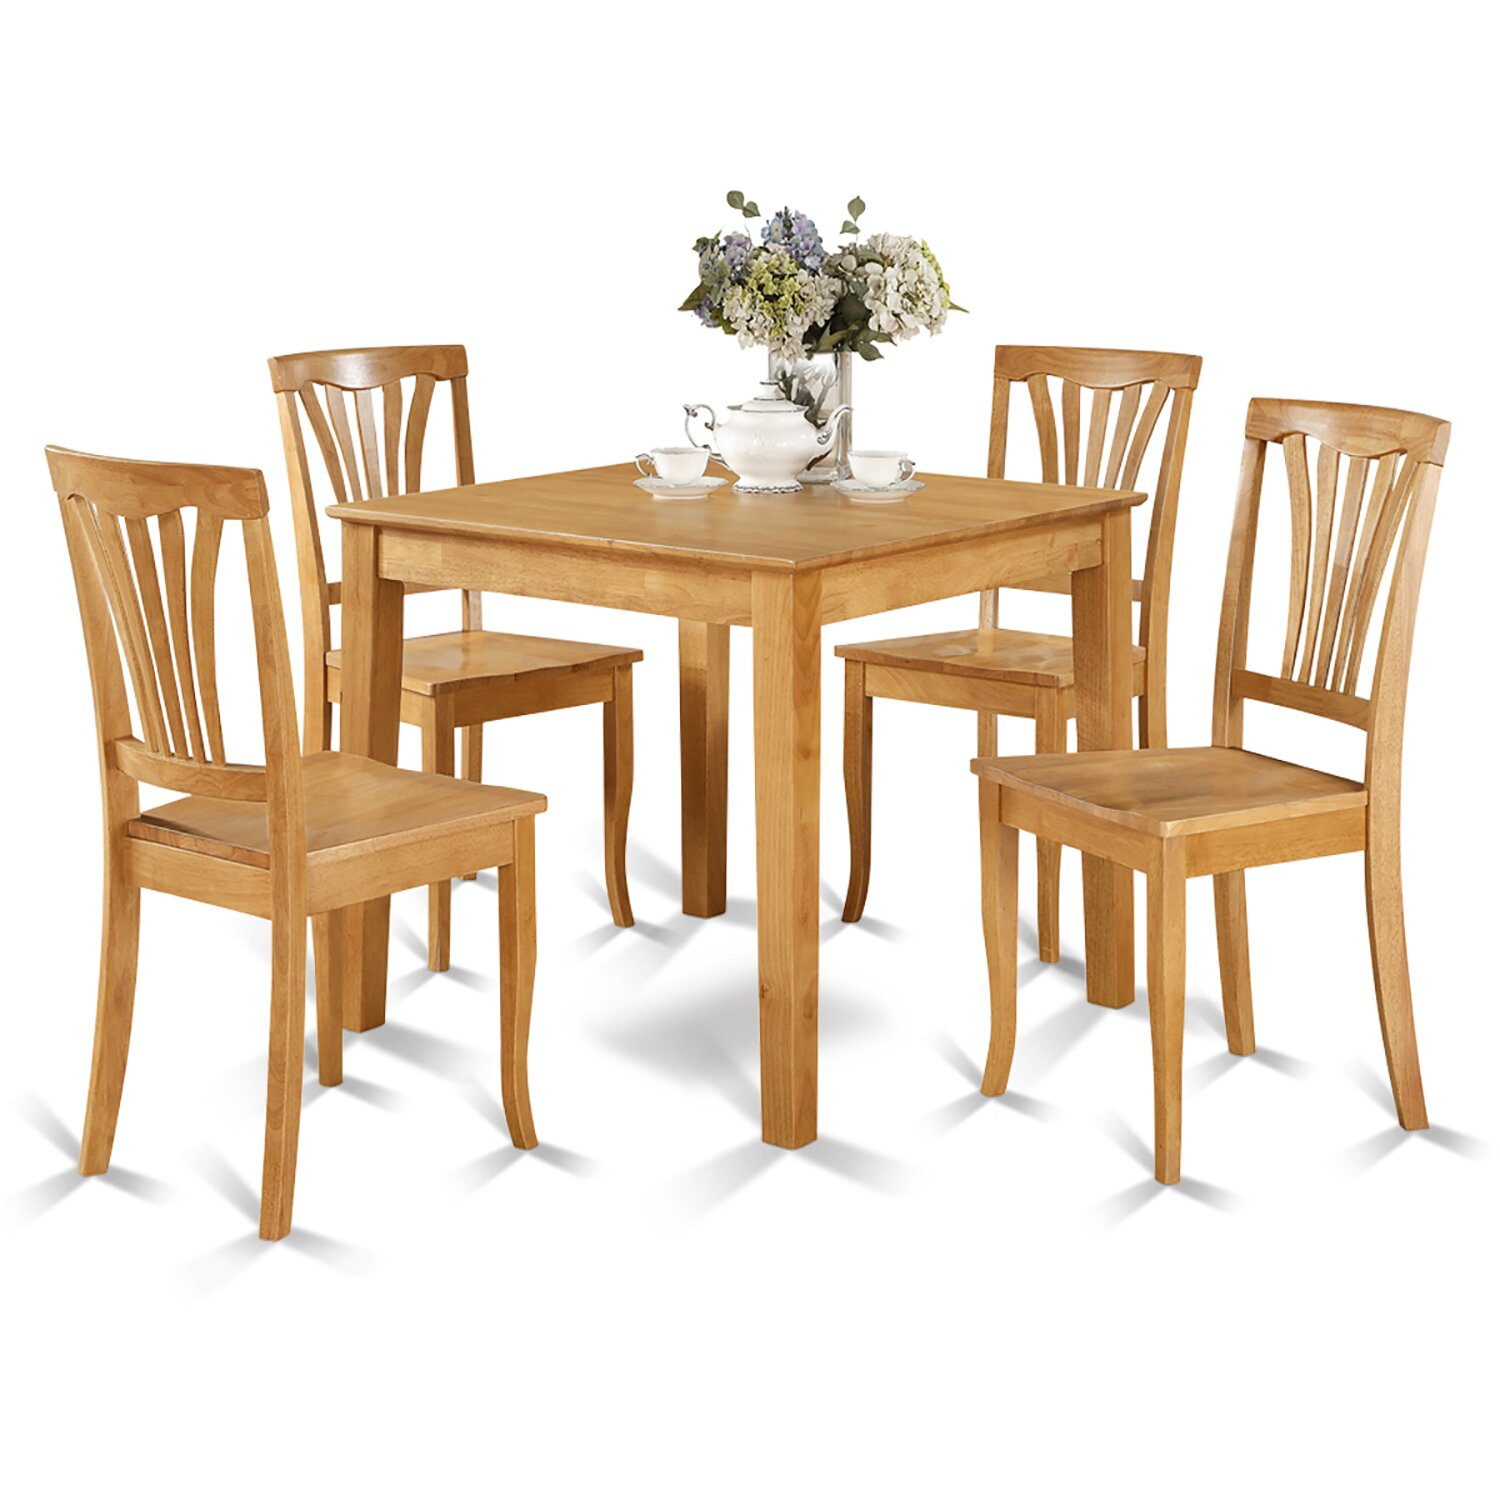 wooden importers oxford 5 piece dining set reviews wayfair